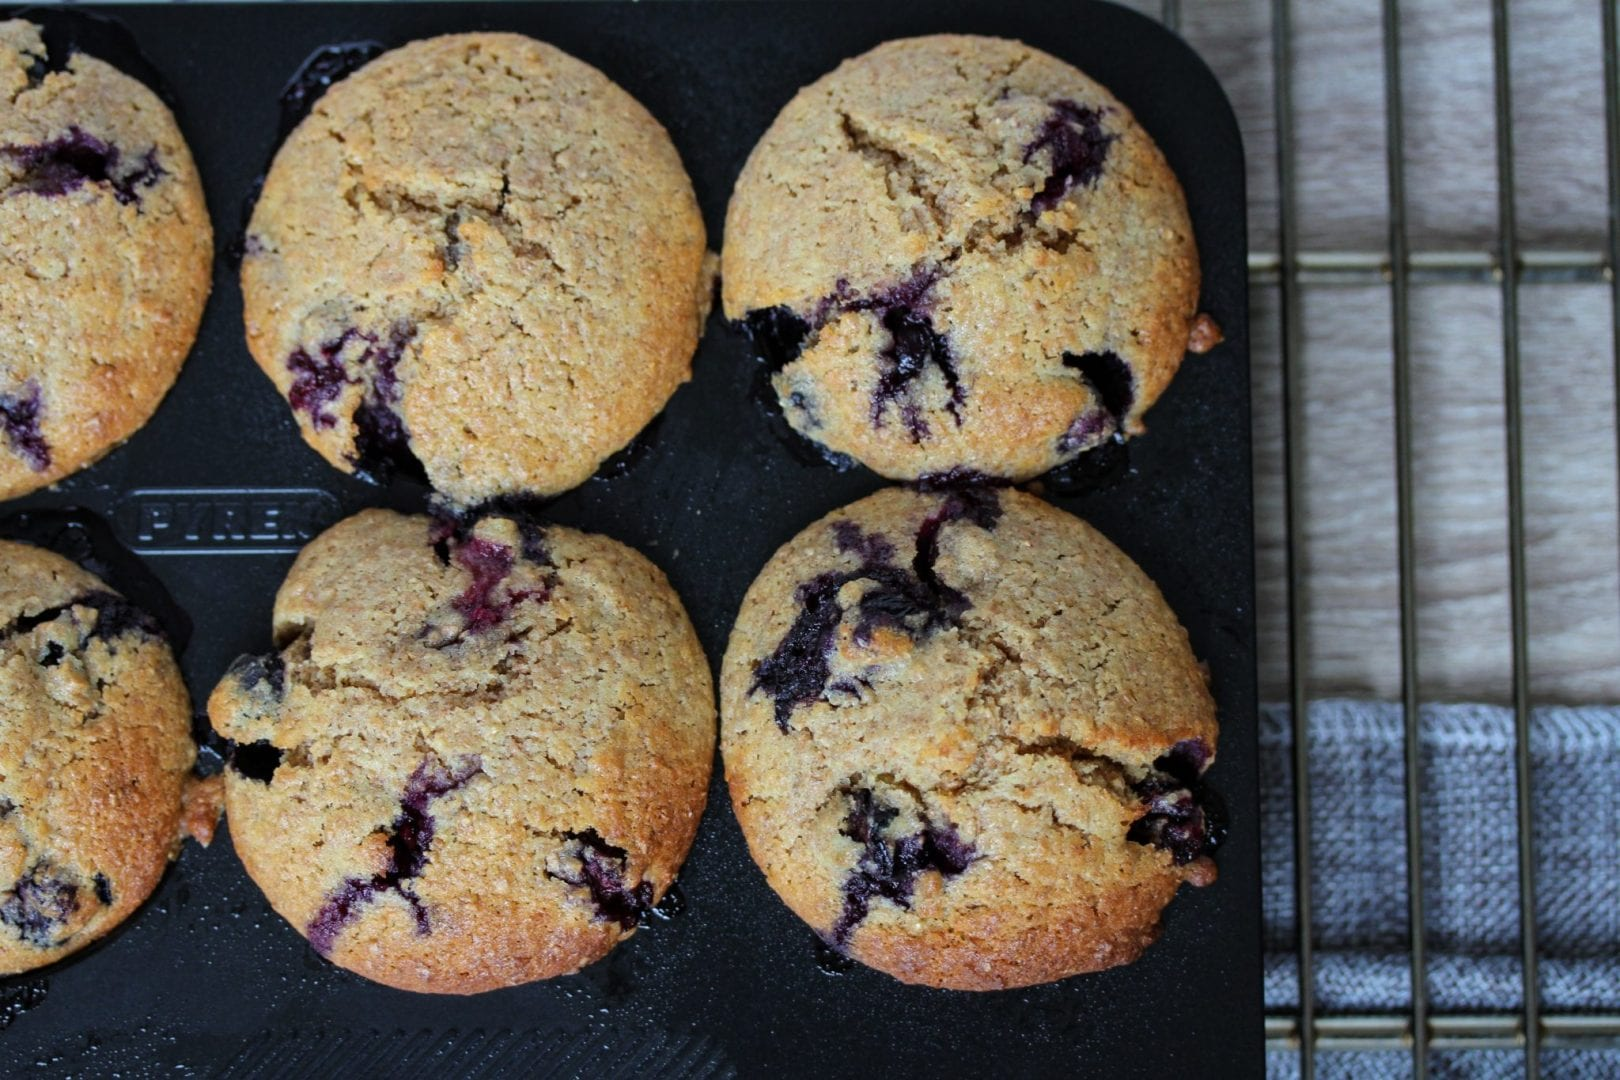 Blueberry muffins - wholewheat blueberry muffins - healthy blueberry muffins (30)